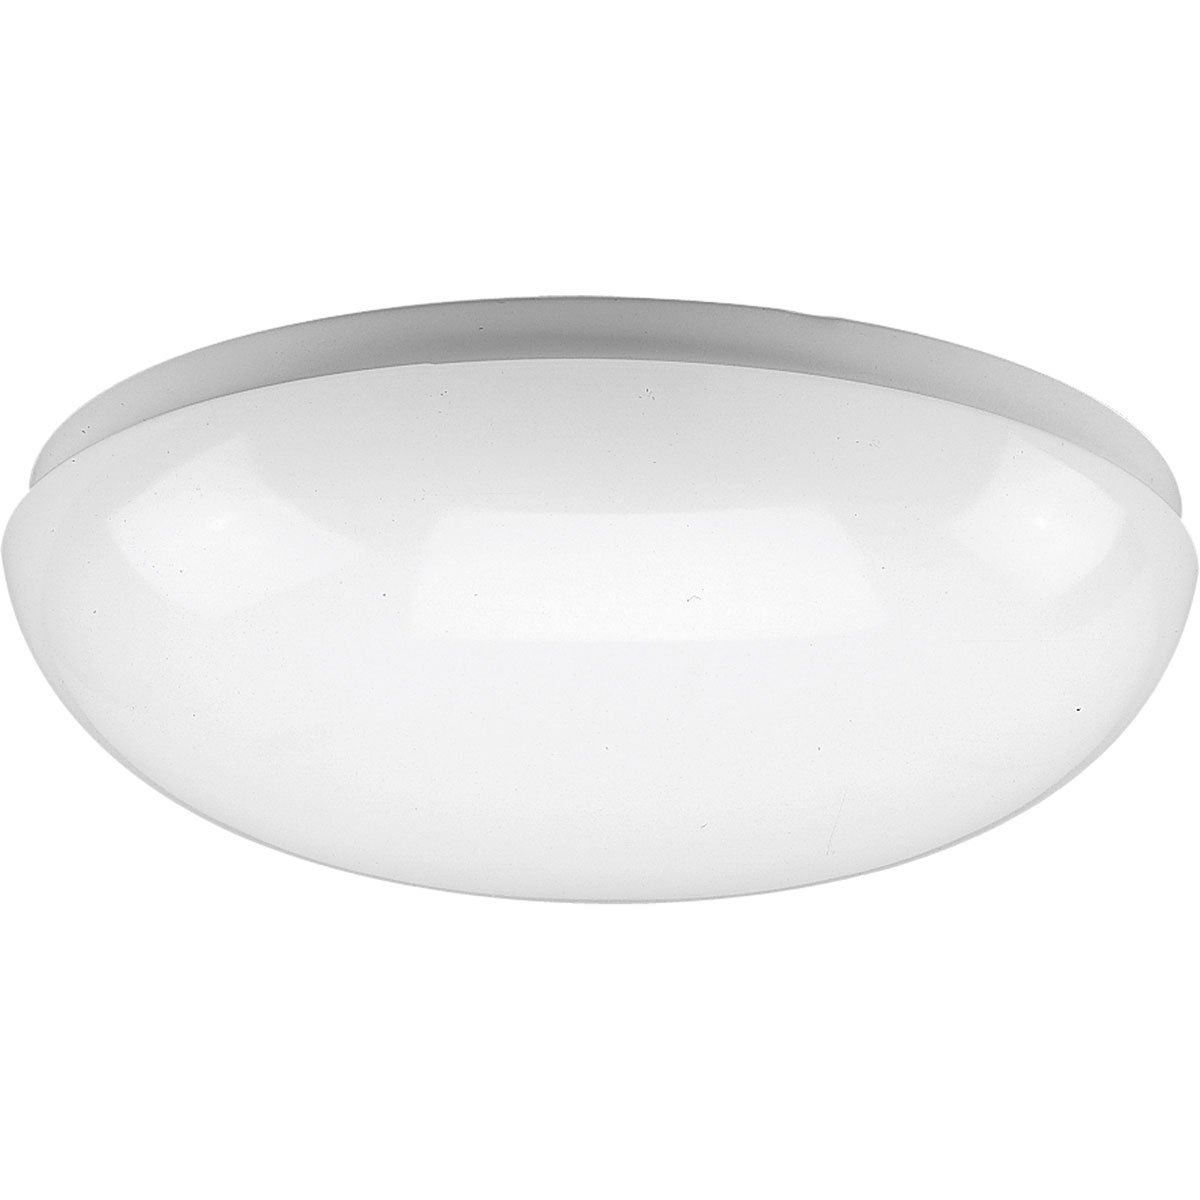 Progress Lighting P7385-30 White Contoured Acrylic Clouds with Twist On Installation For Wall Or Ceiling Mount with Standard 120 Volt Normal Power Factor Ballasts, White